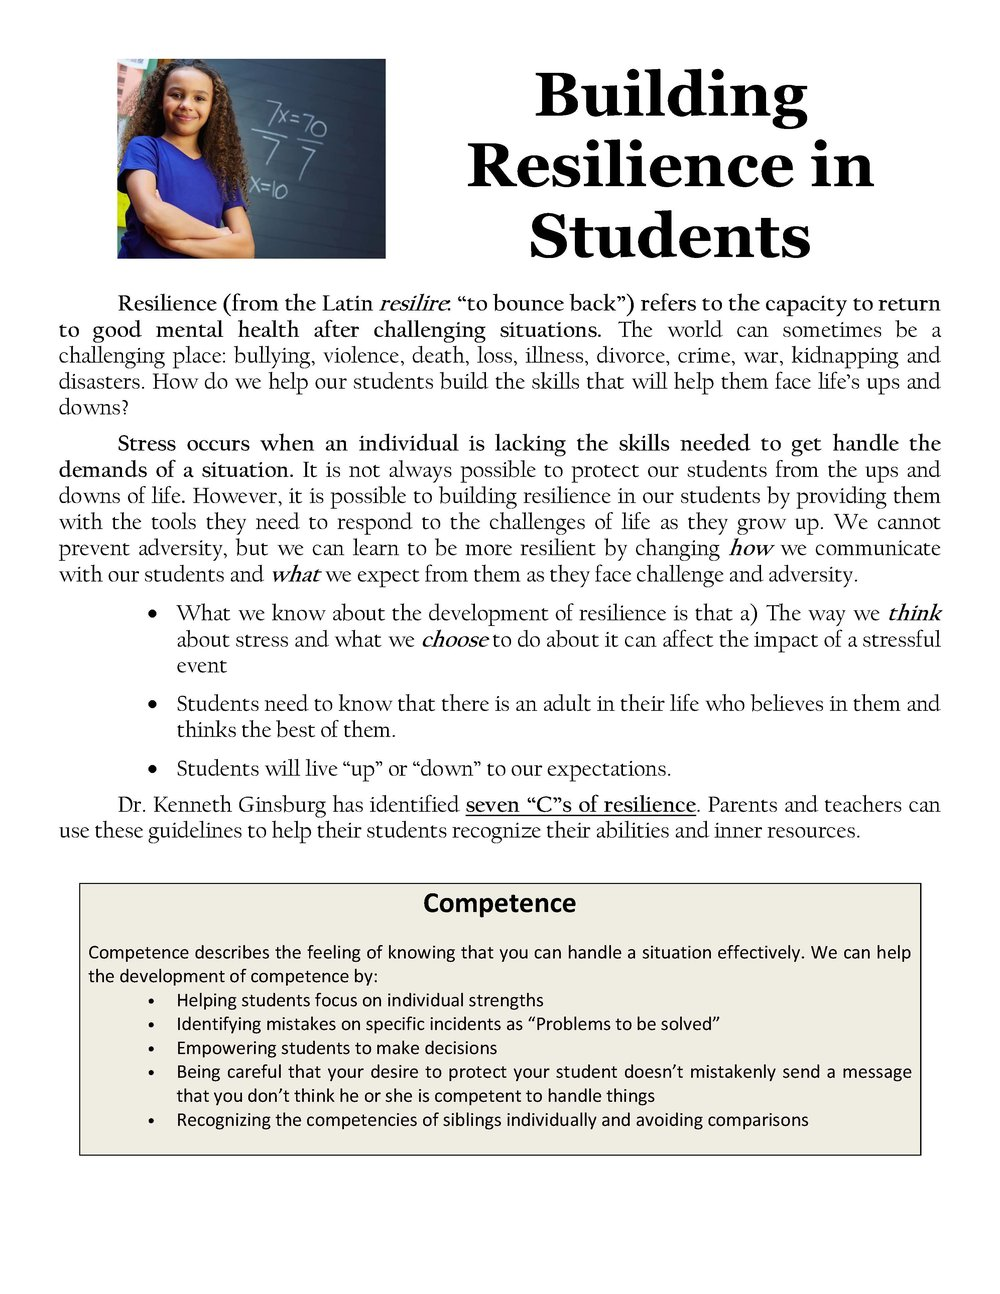 Building Resilience in Students- handout_Page_1.jpg